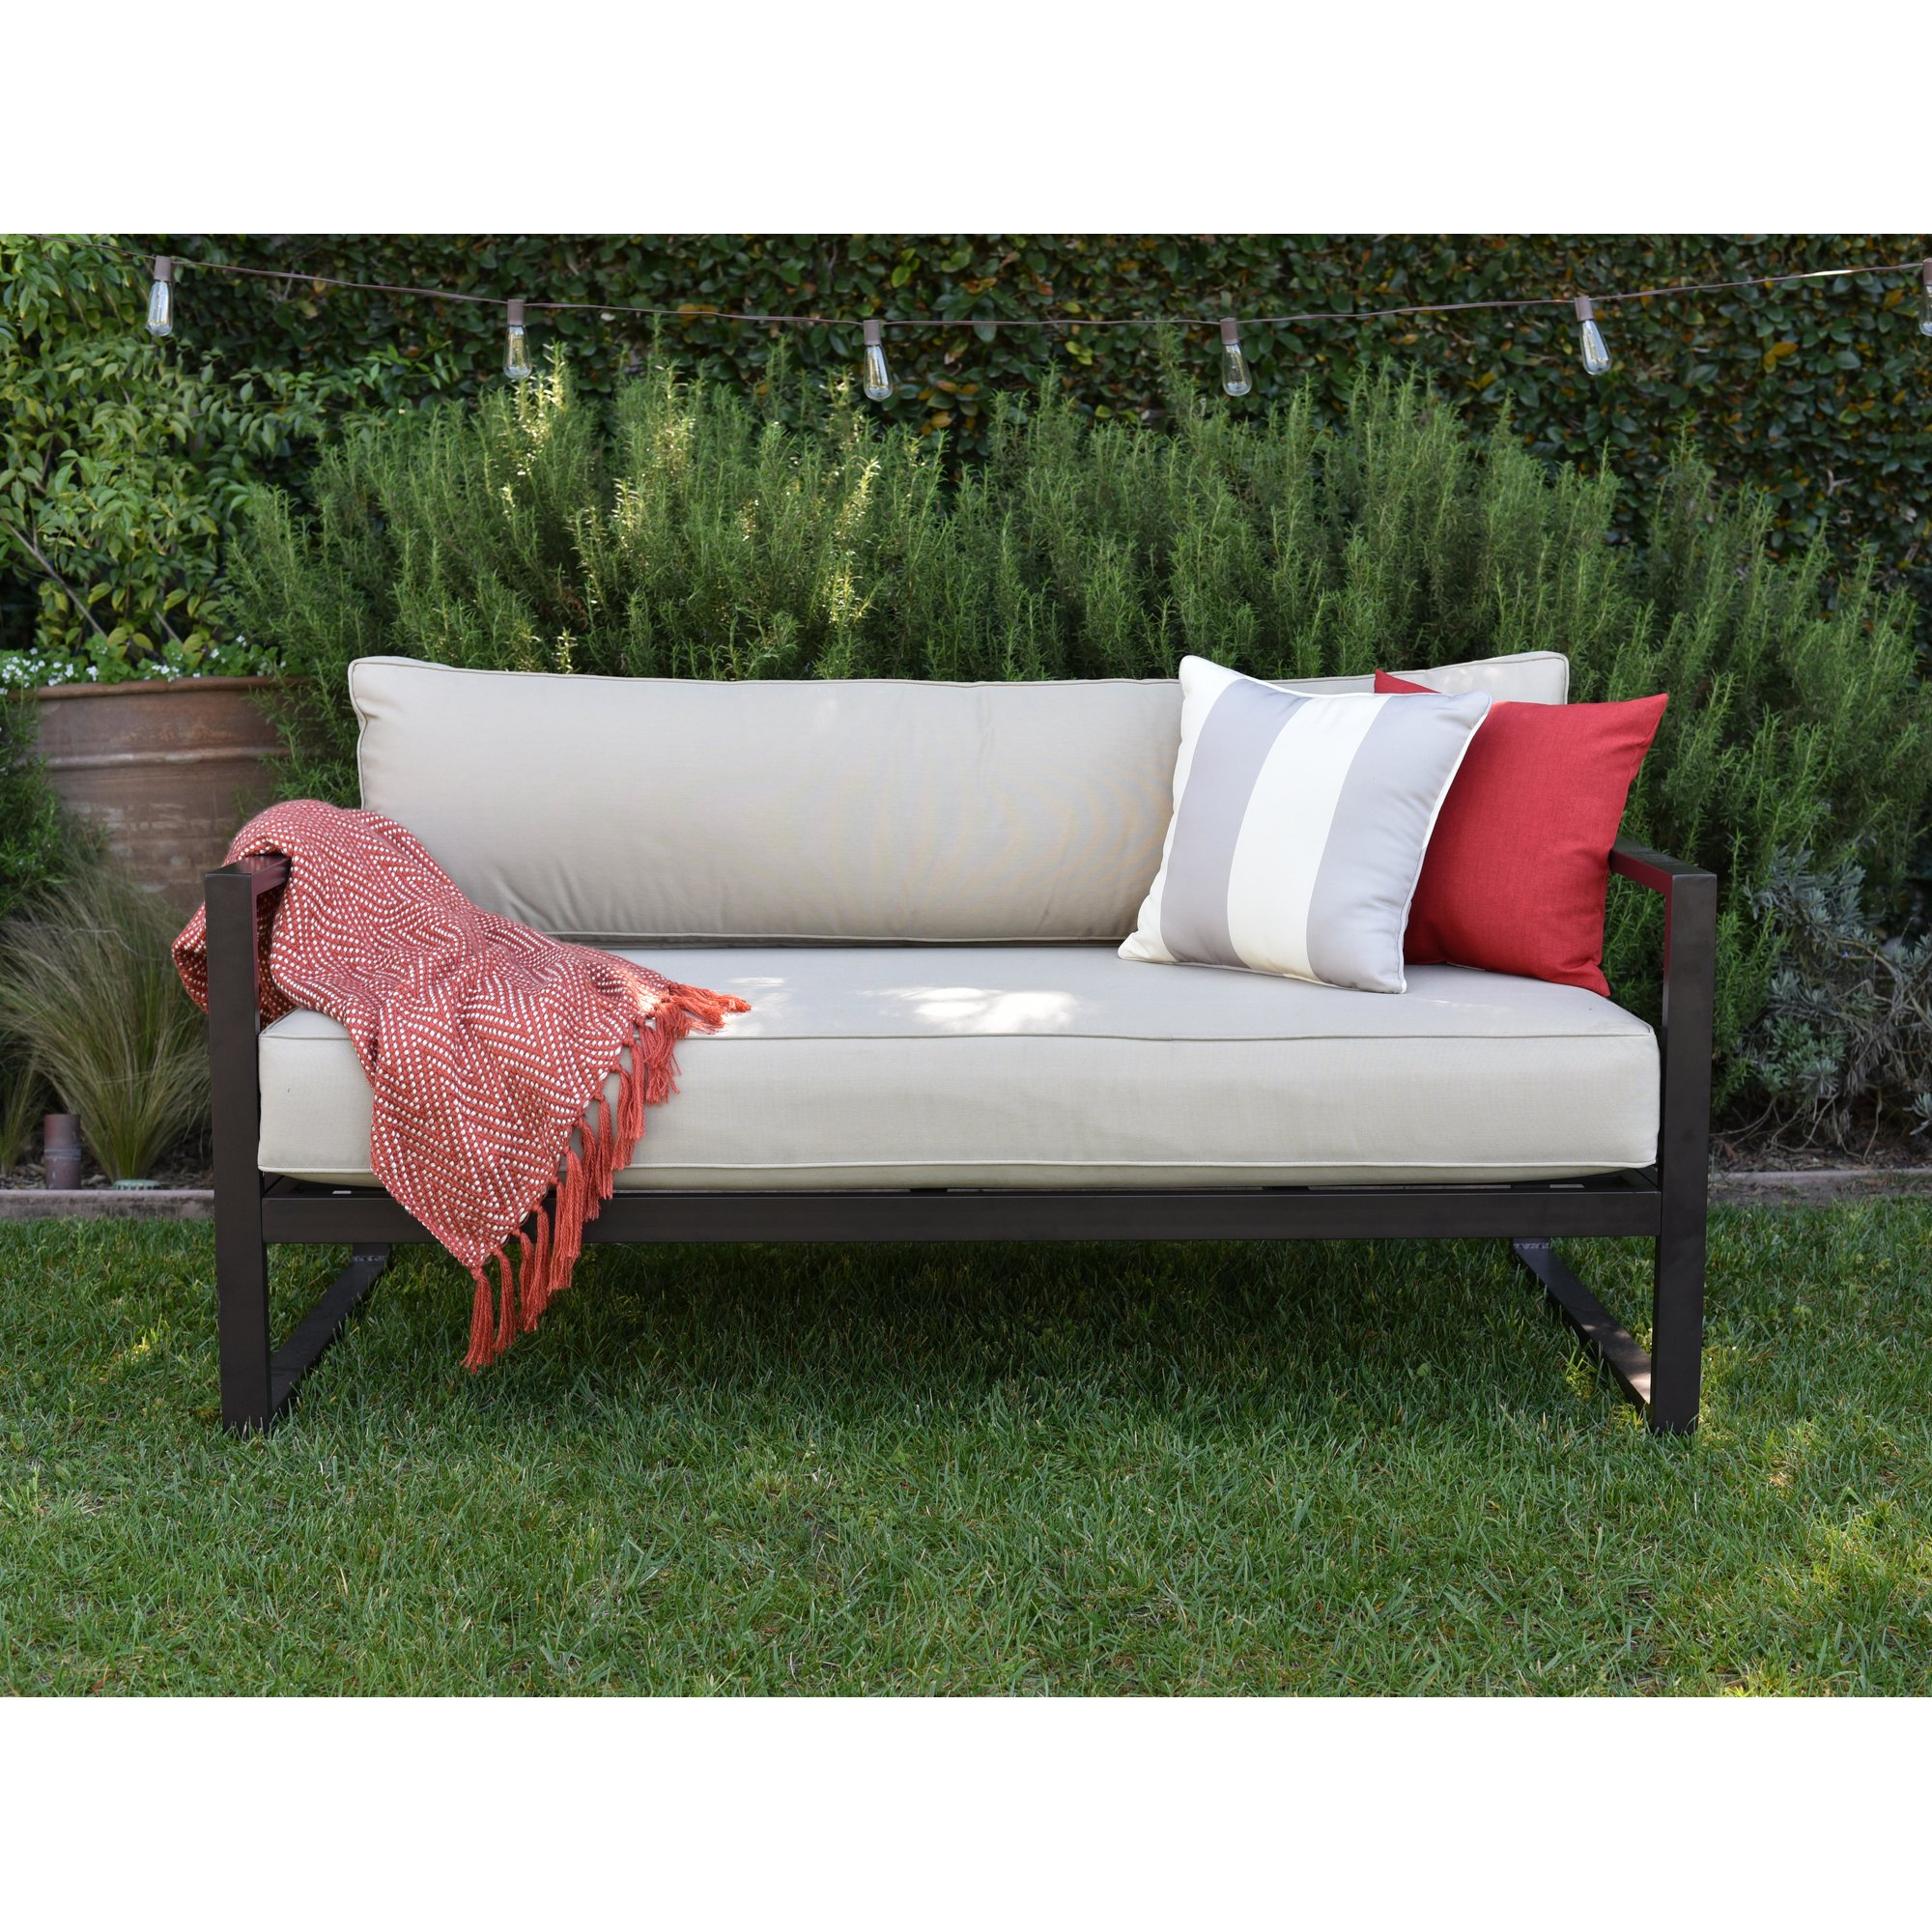 catalina outdoor sofa with cushions FGEHUGP